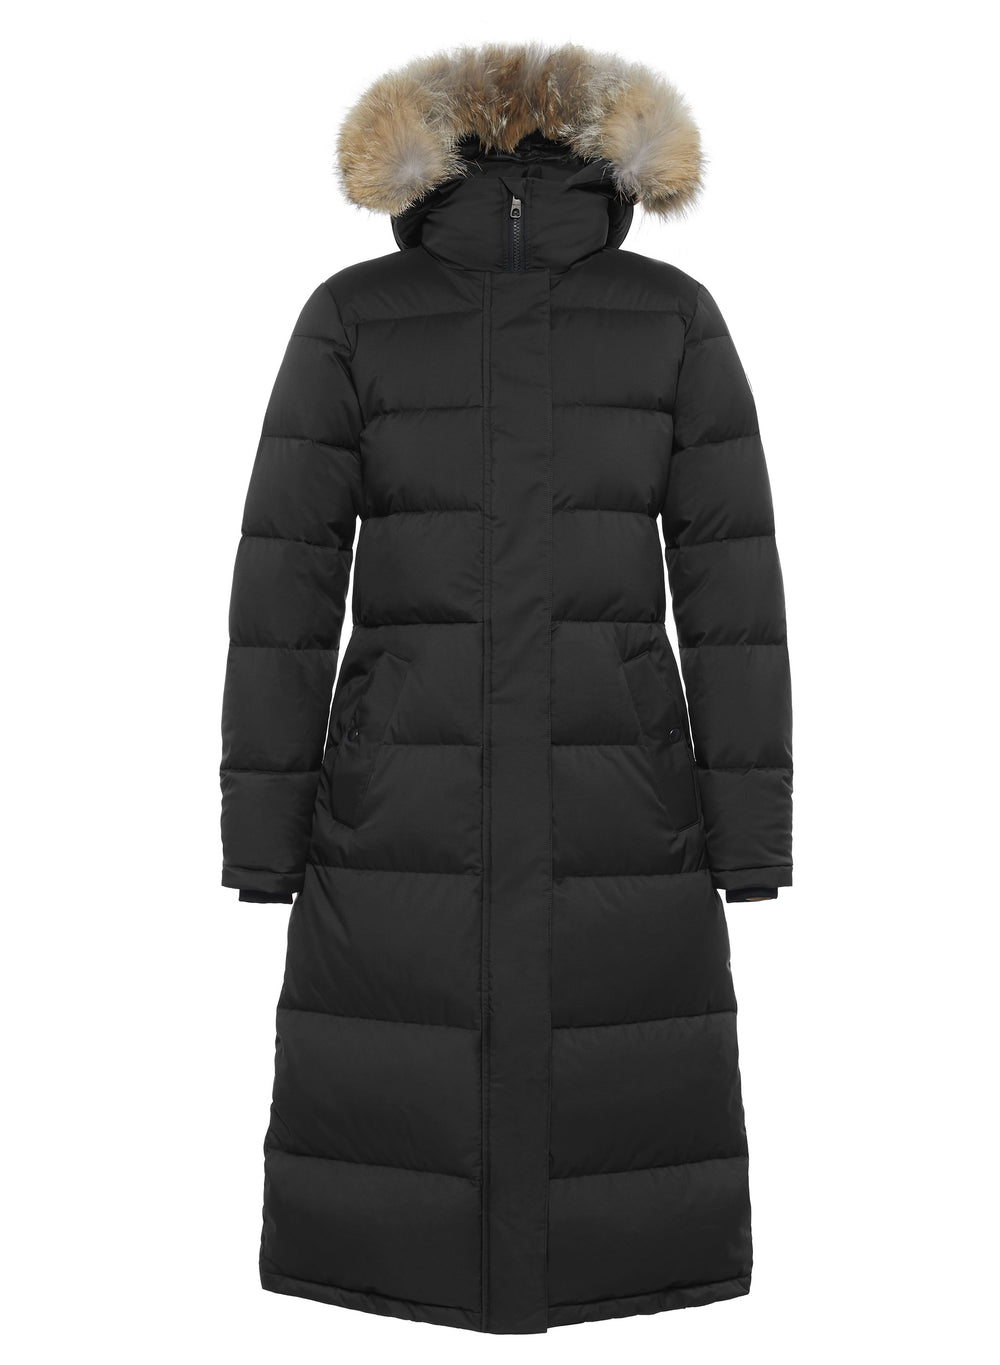 Quartz Co. Jane Parka - Women's